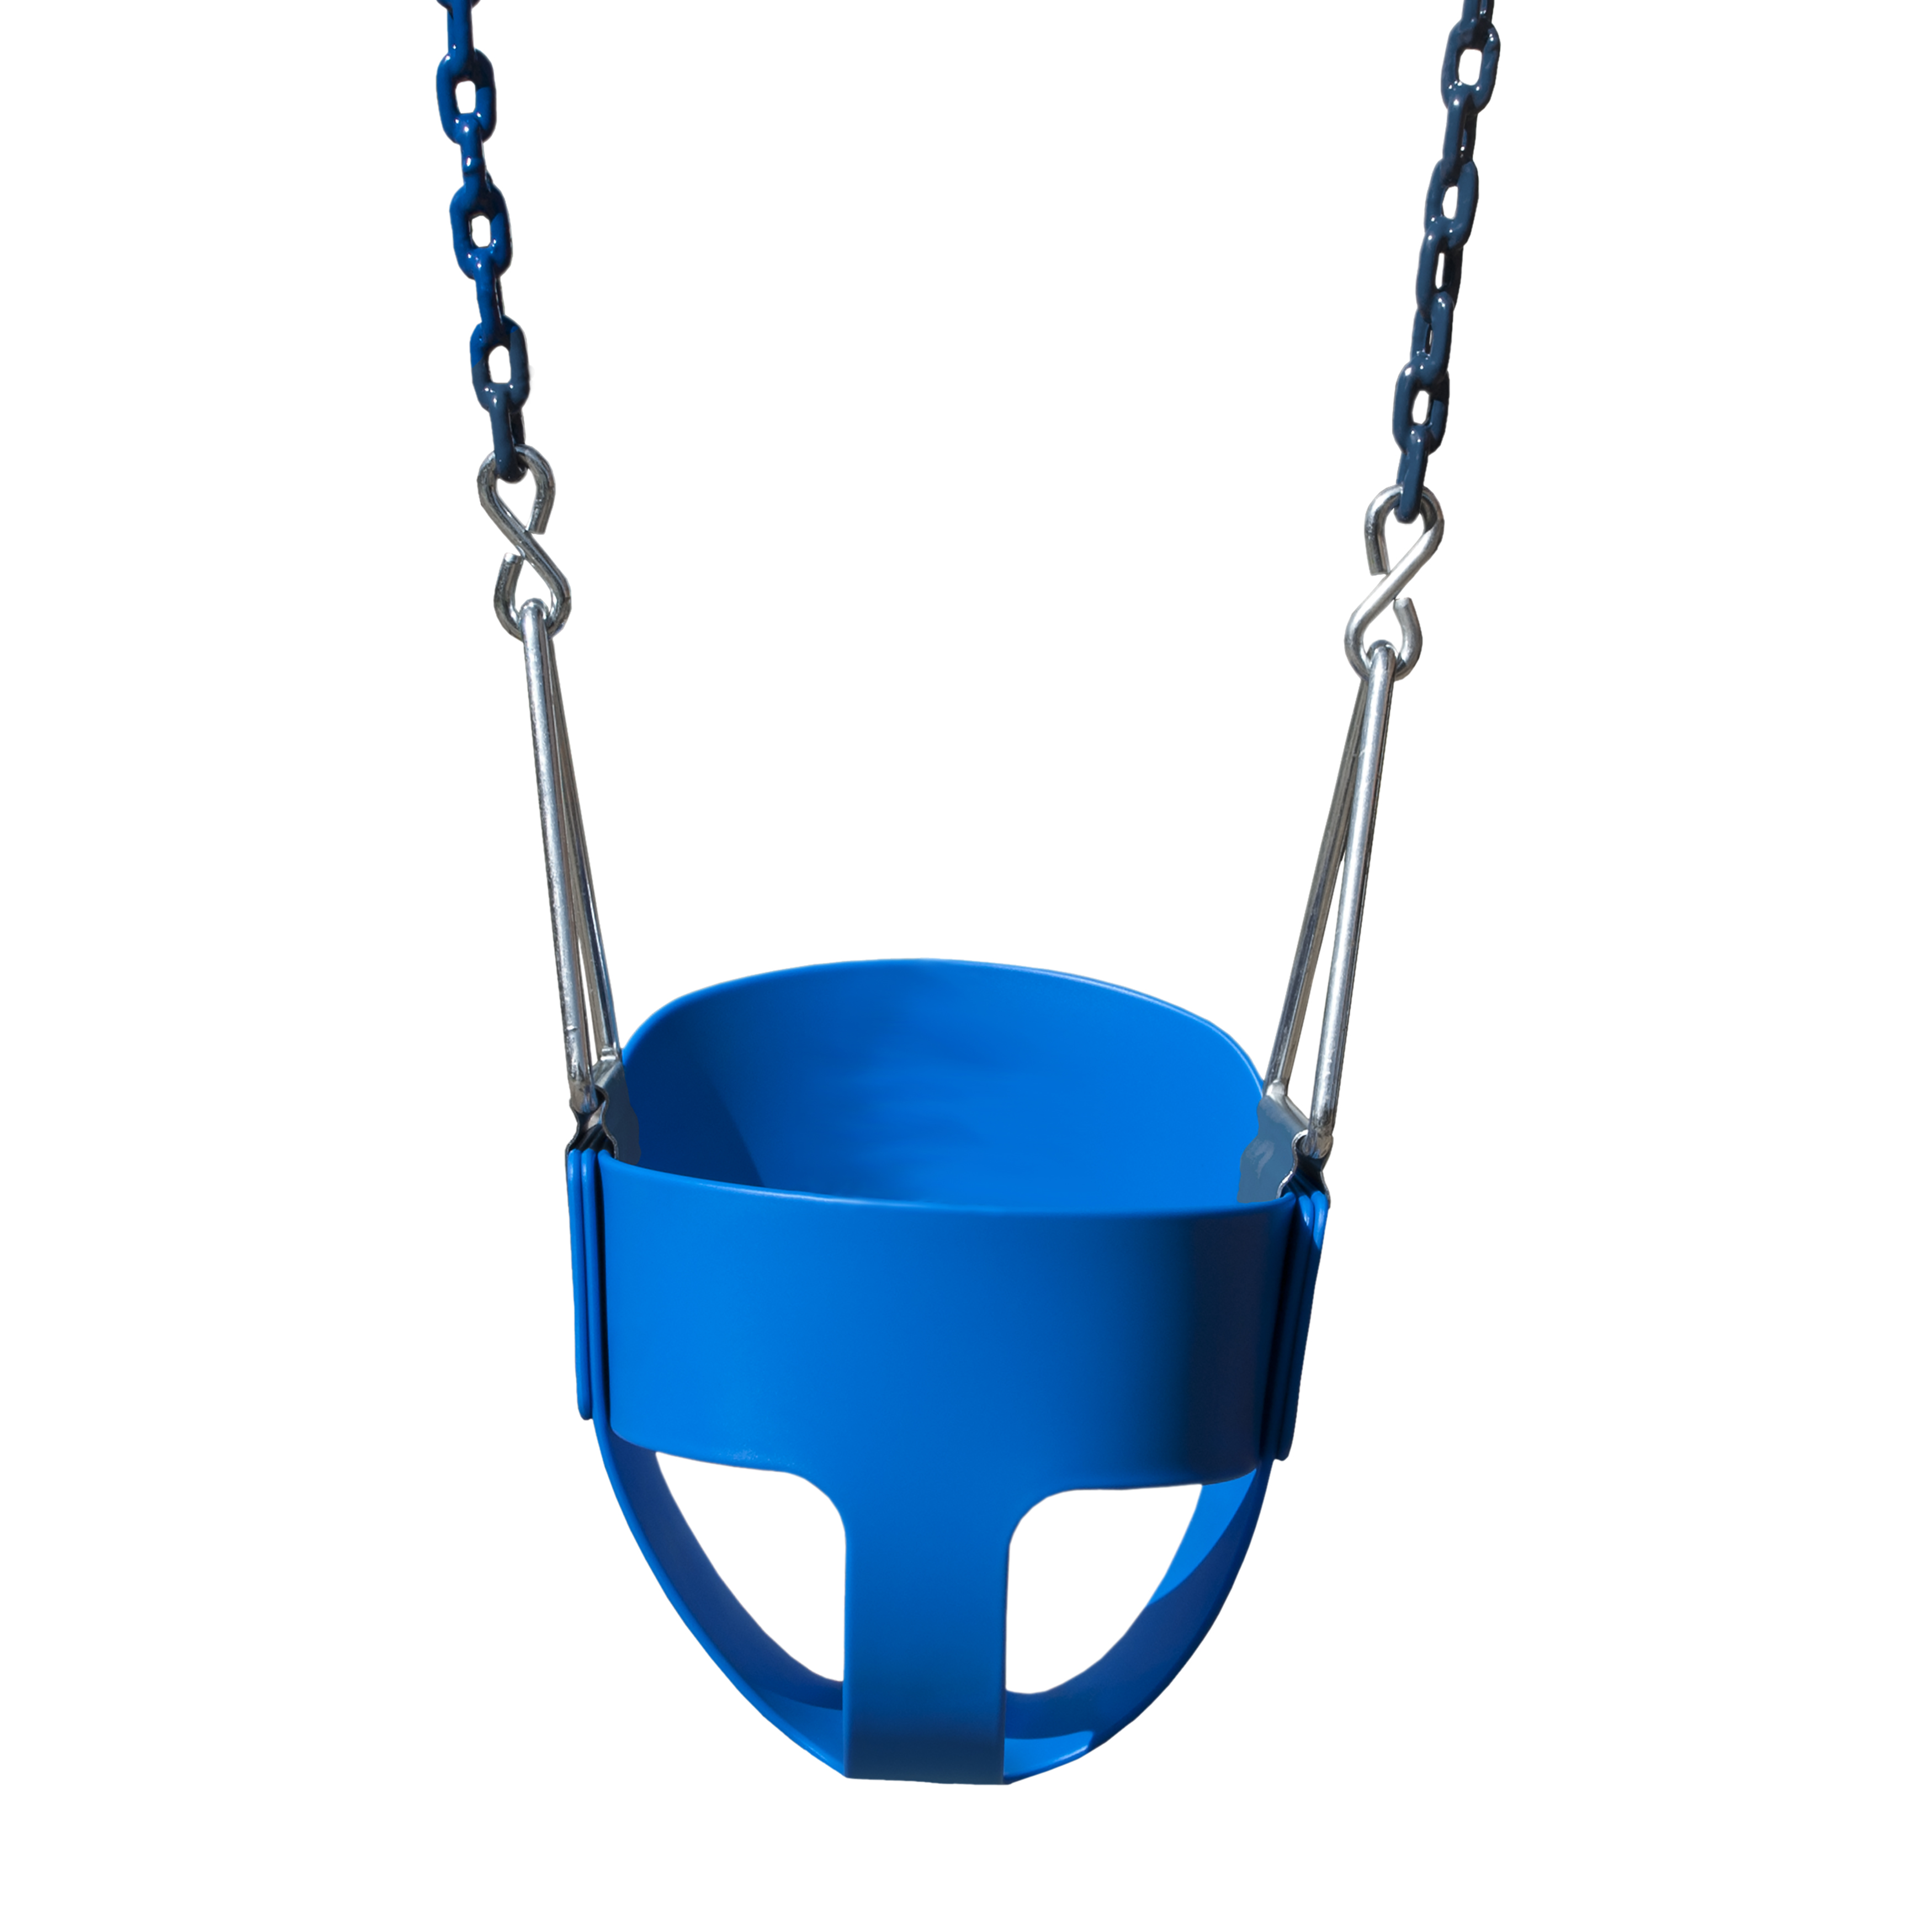 Gorilla Playsets Blue Full Bucket Toddler Swing with Blue Chains